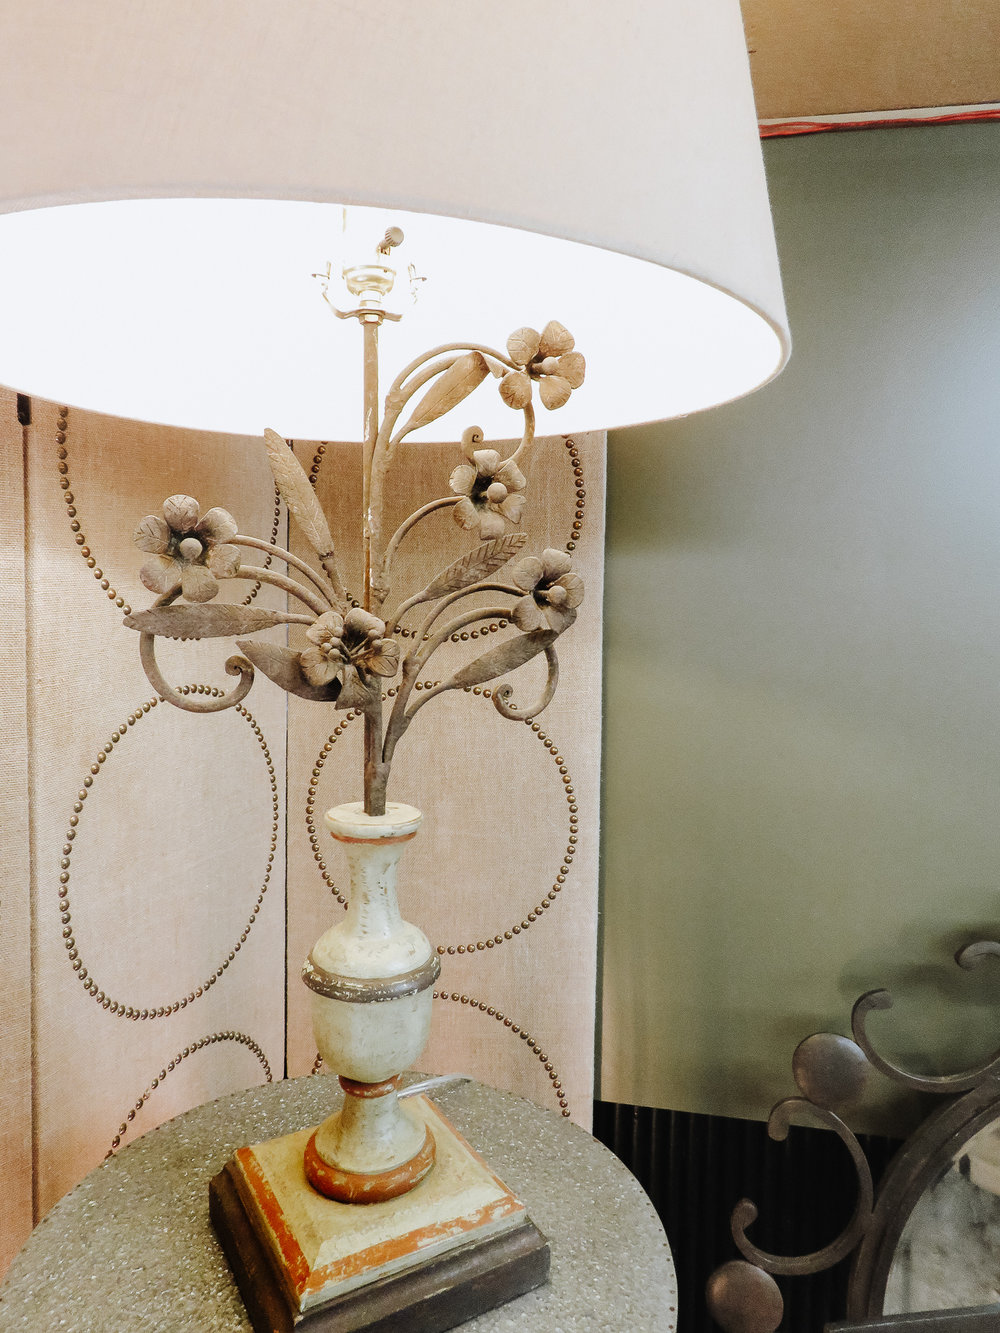 Lighting - Updating light fixtures is a great way to brighten up your space. These floral lamps from Elevate Home Decor add the perfect spring-y touch that your home needs.